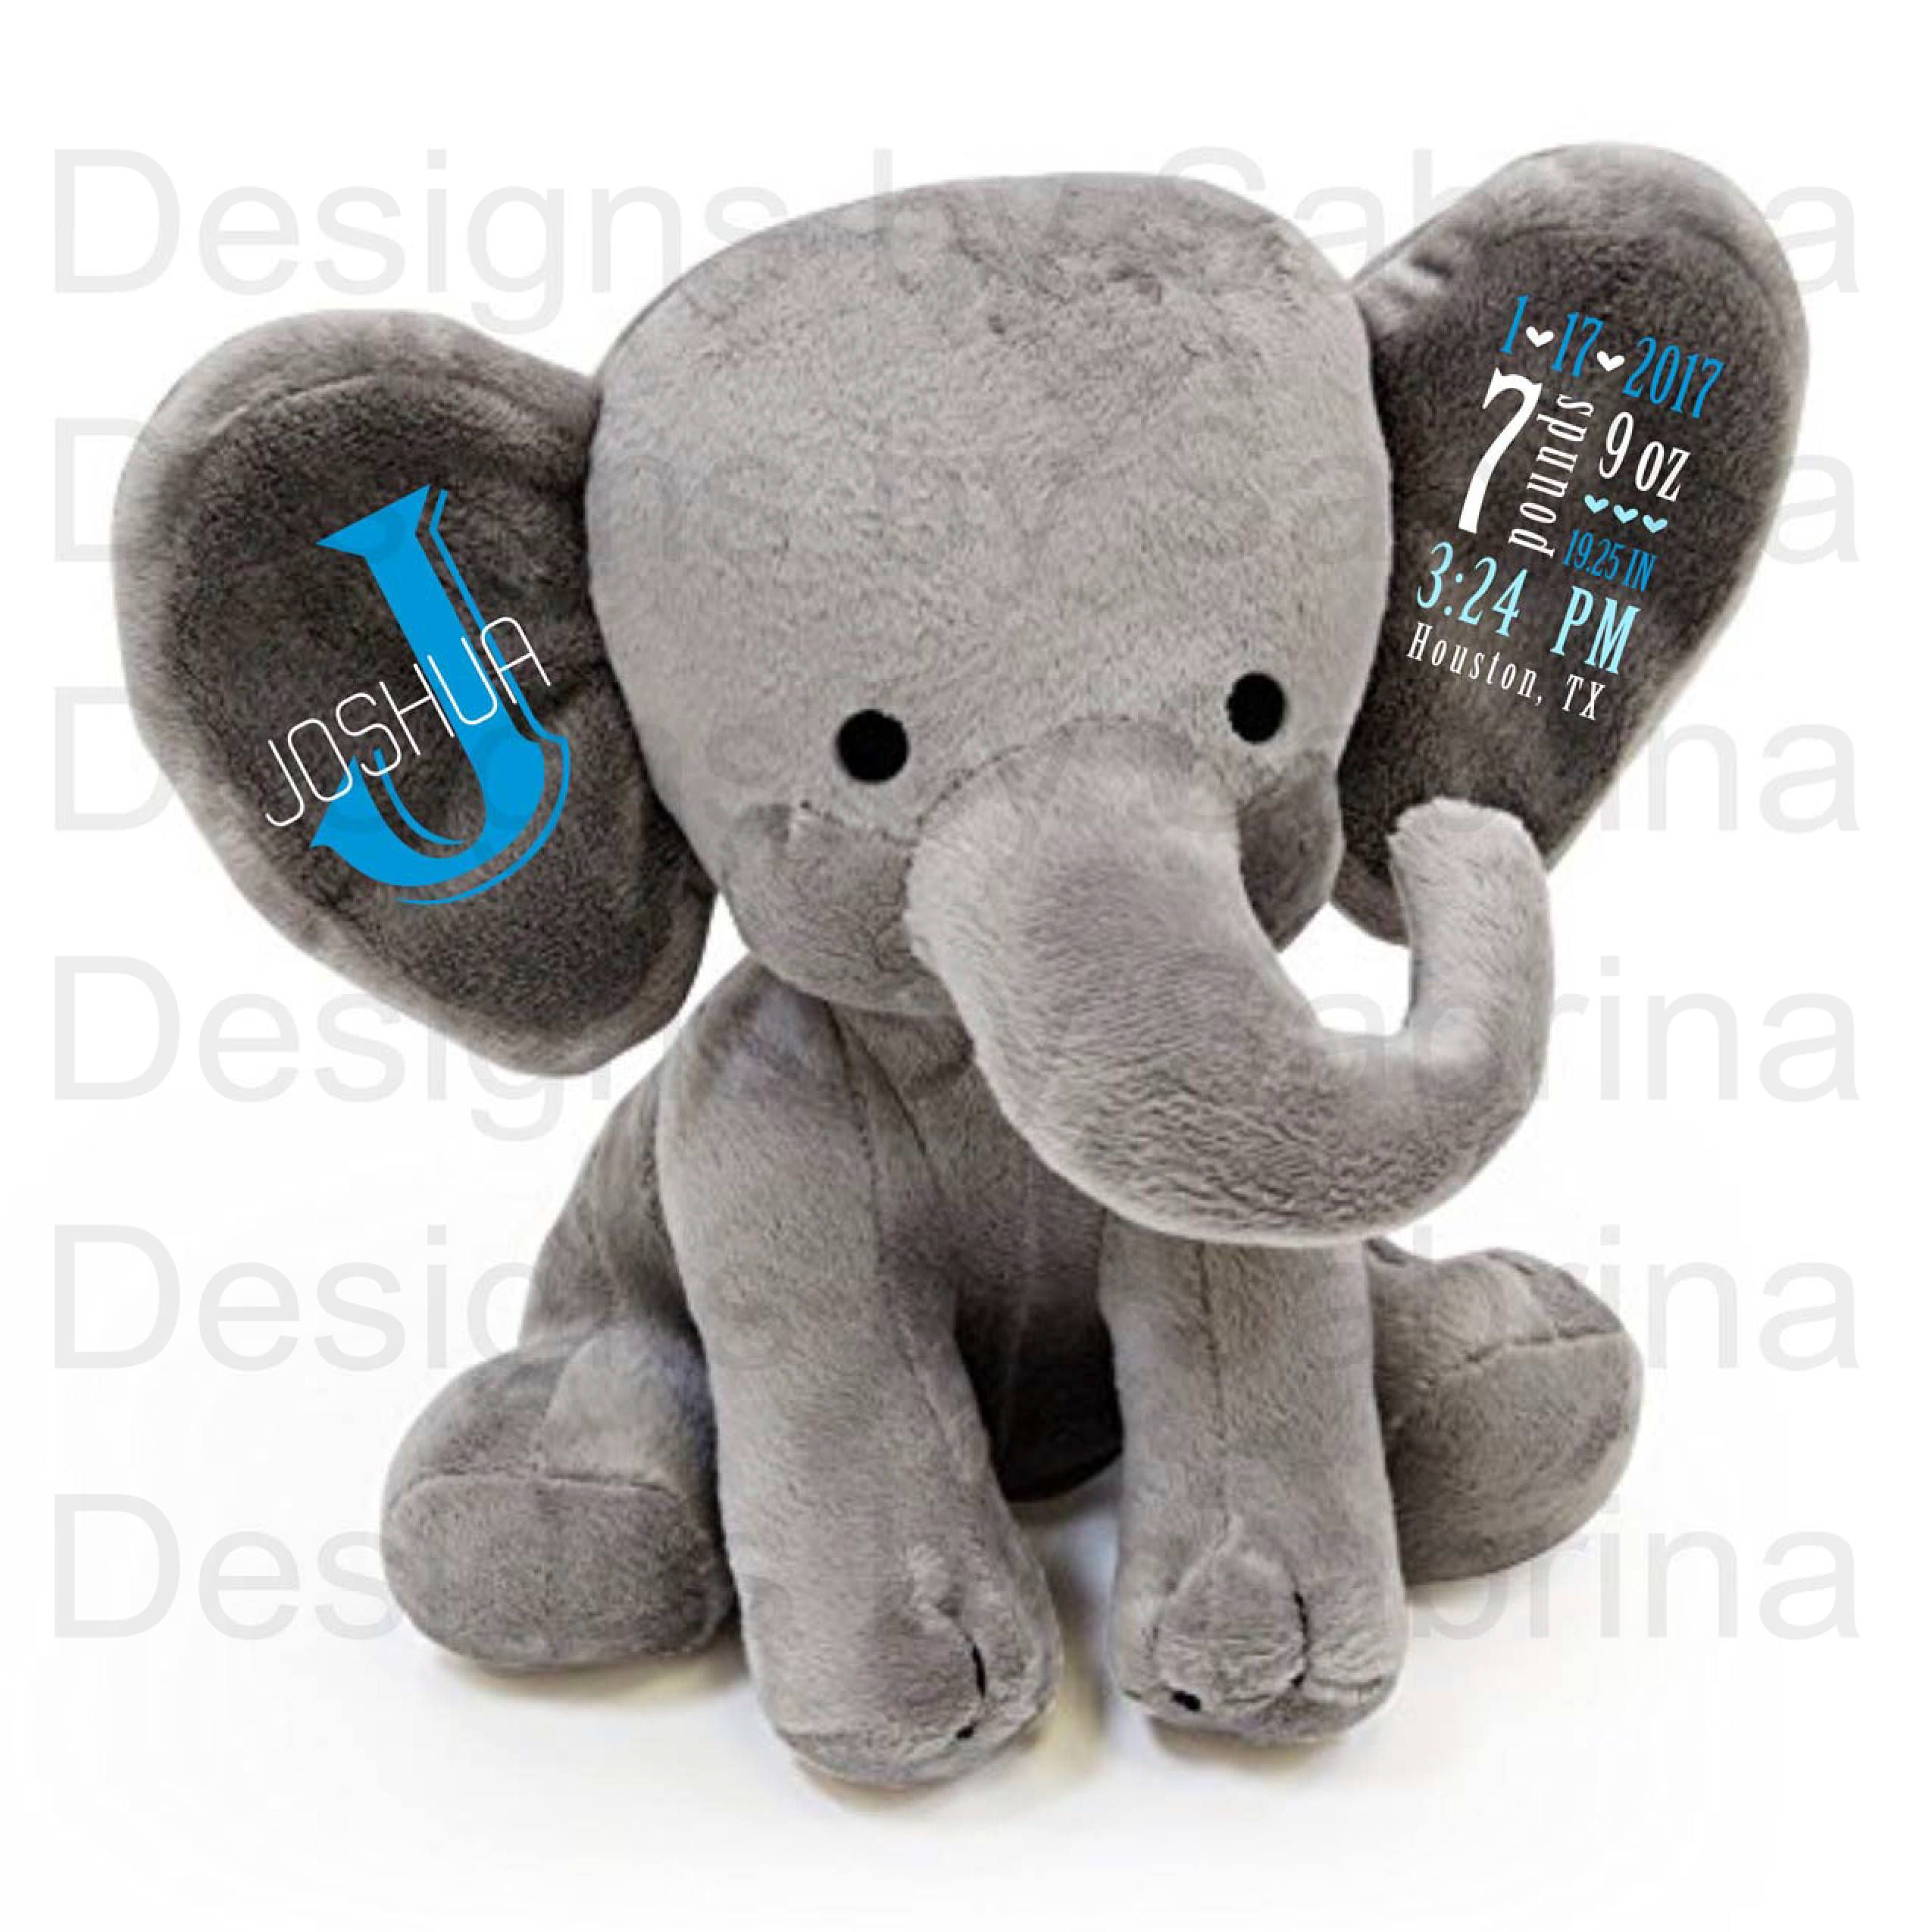 Personalized elephant personalized baby gift baby shower gift baby personalized elephant personalized baby gift baby shower gift baby gift plush elephant negle